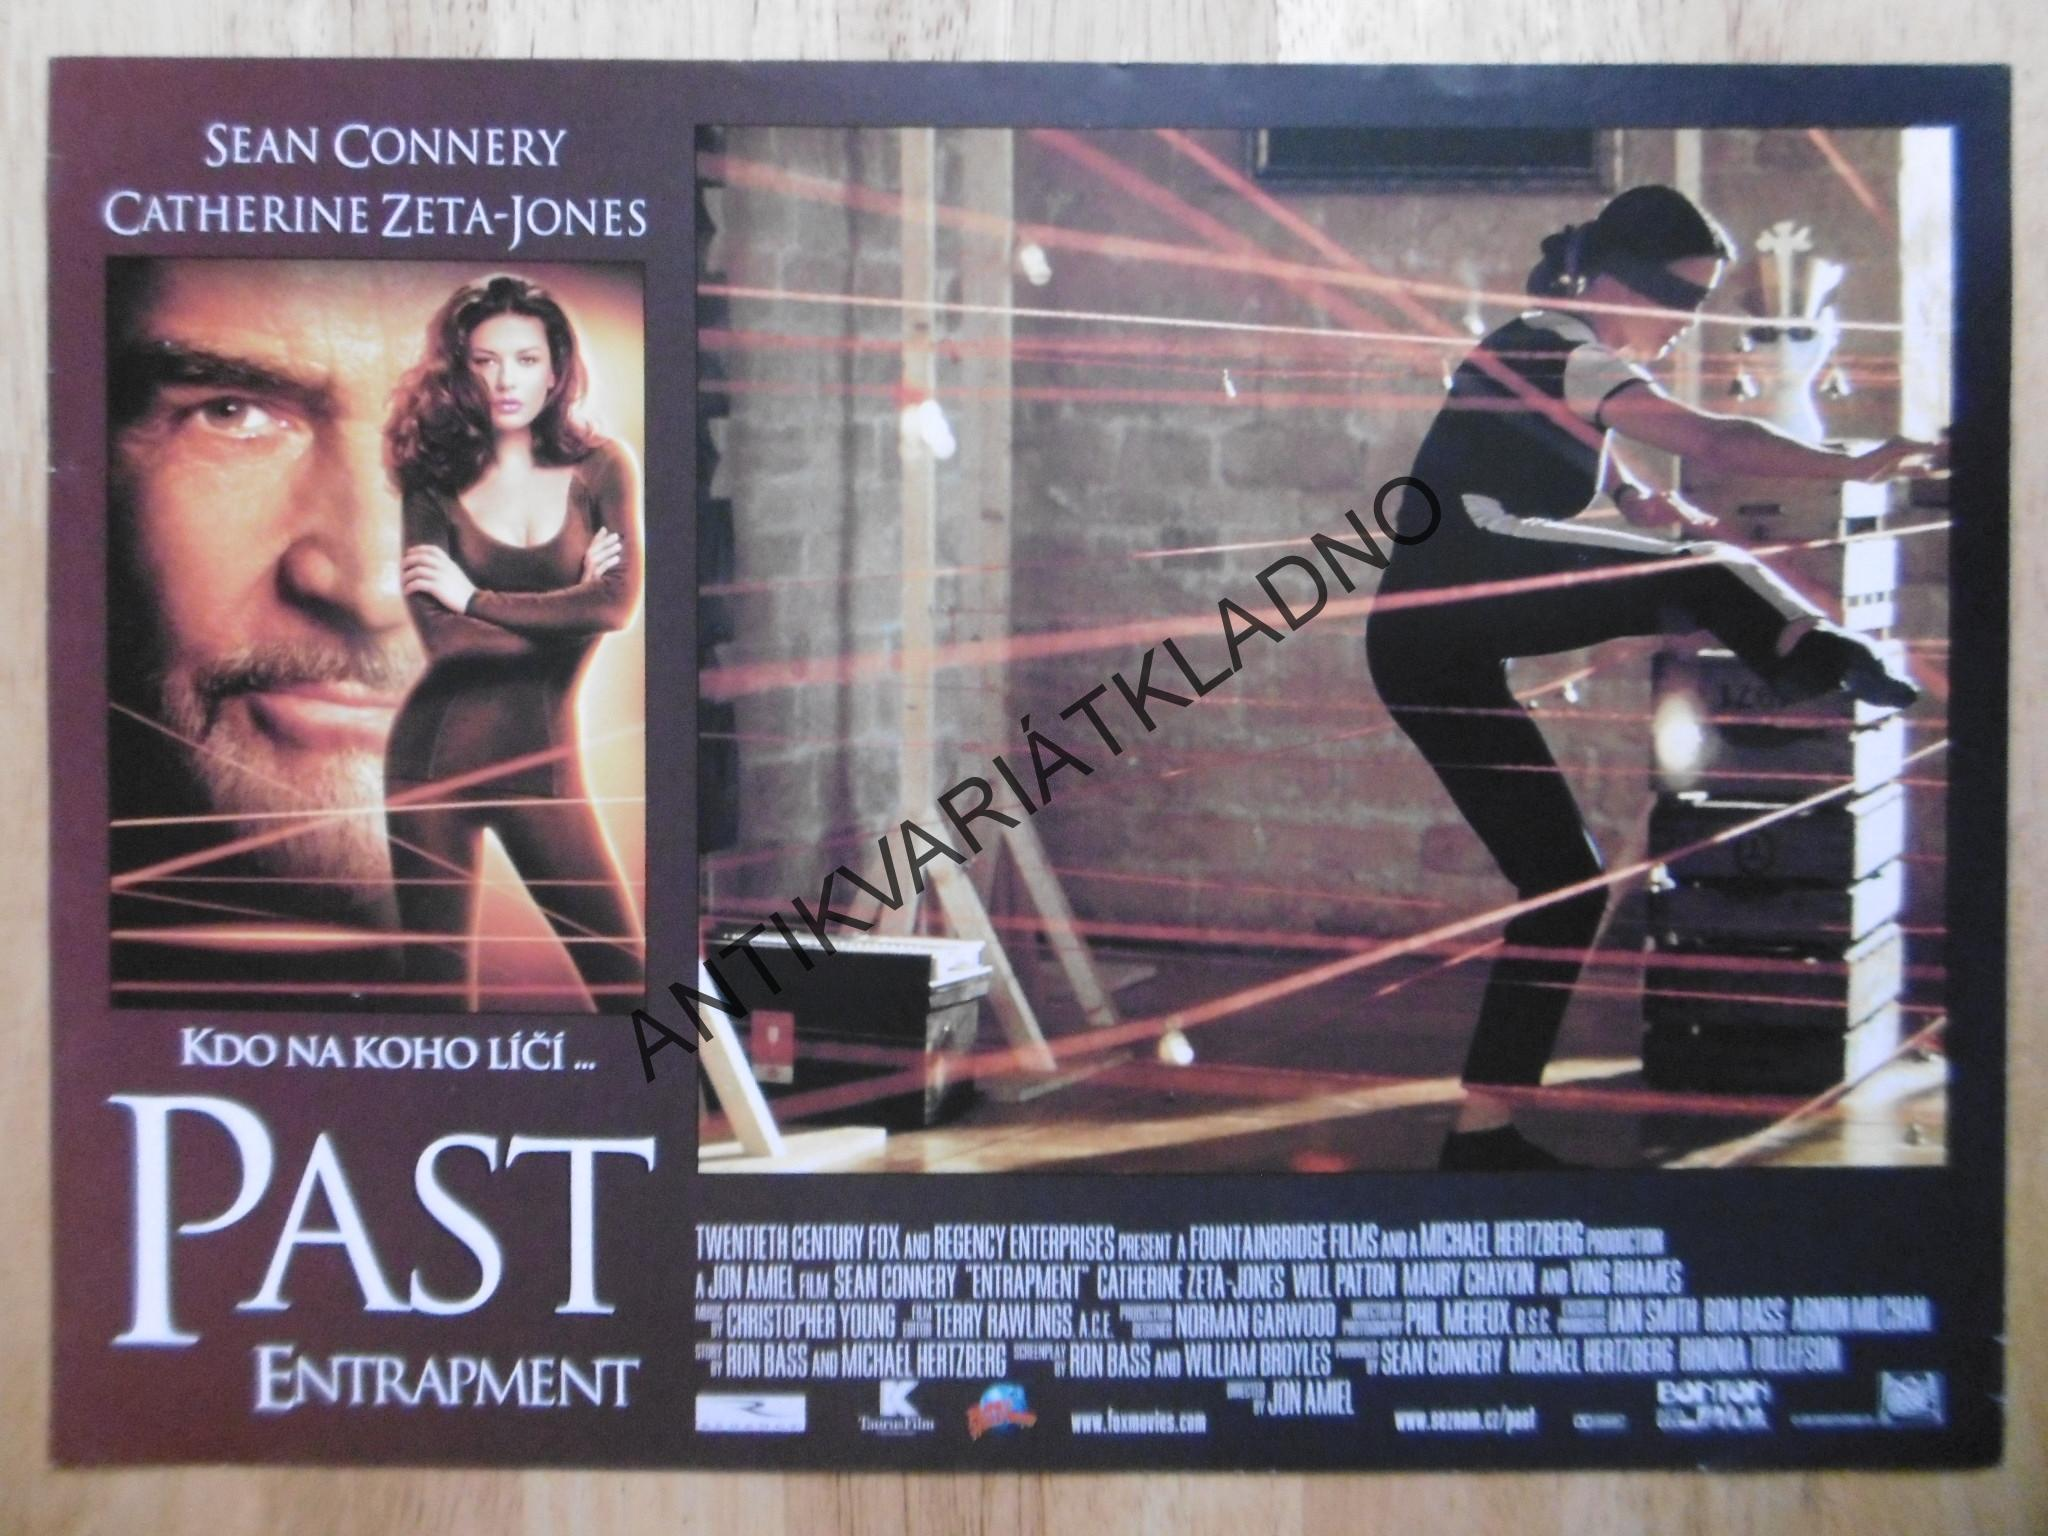 PAST, CONNERY, ZETA-JONES, FOTOSKA FILM USA